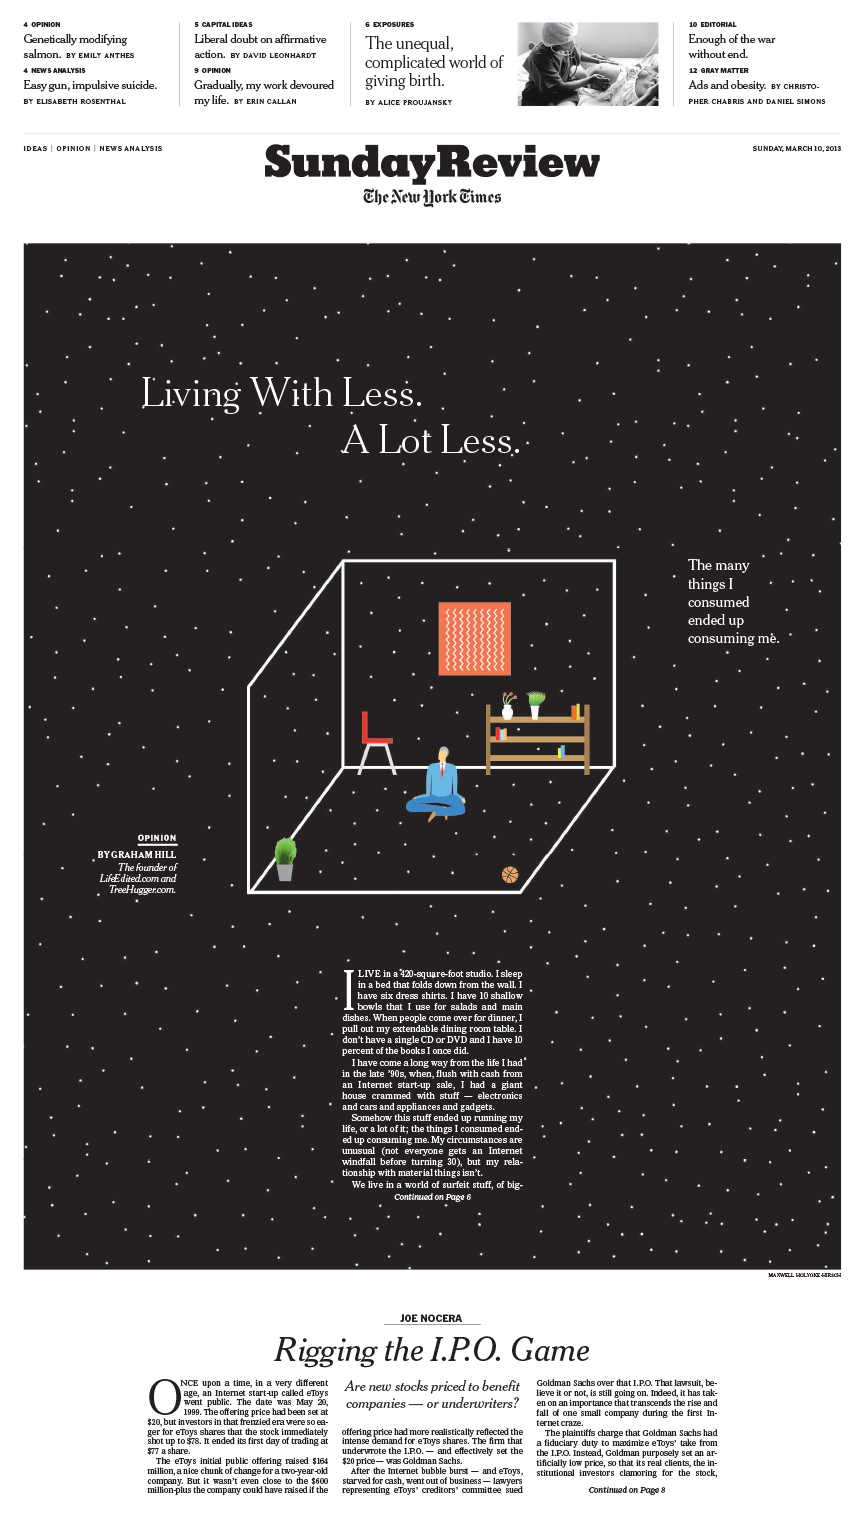 Sunday Review Cover: Living With Less. A Lot Less.